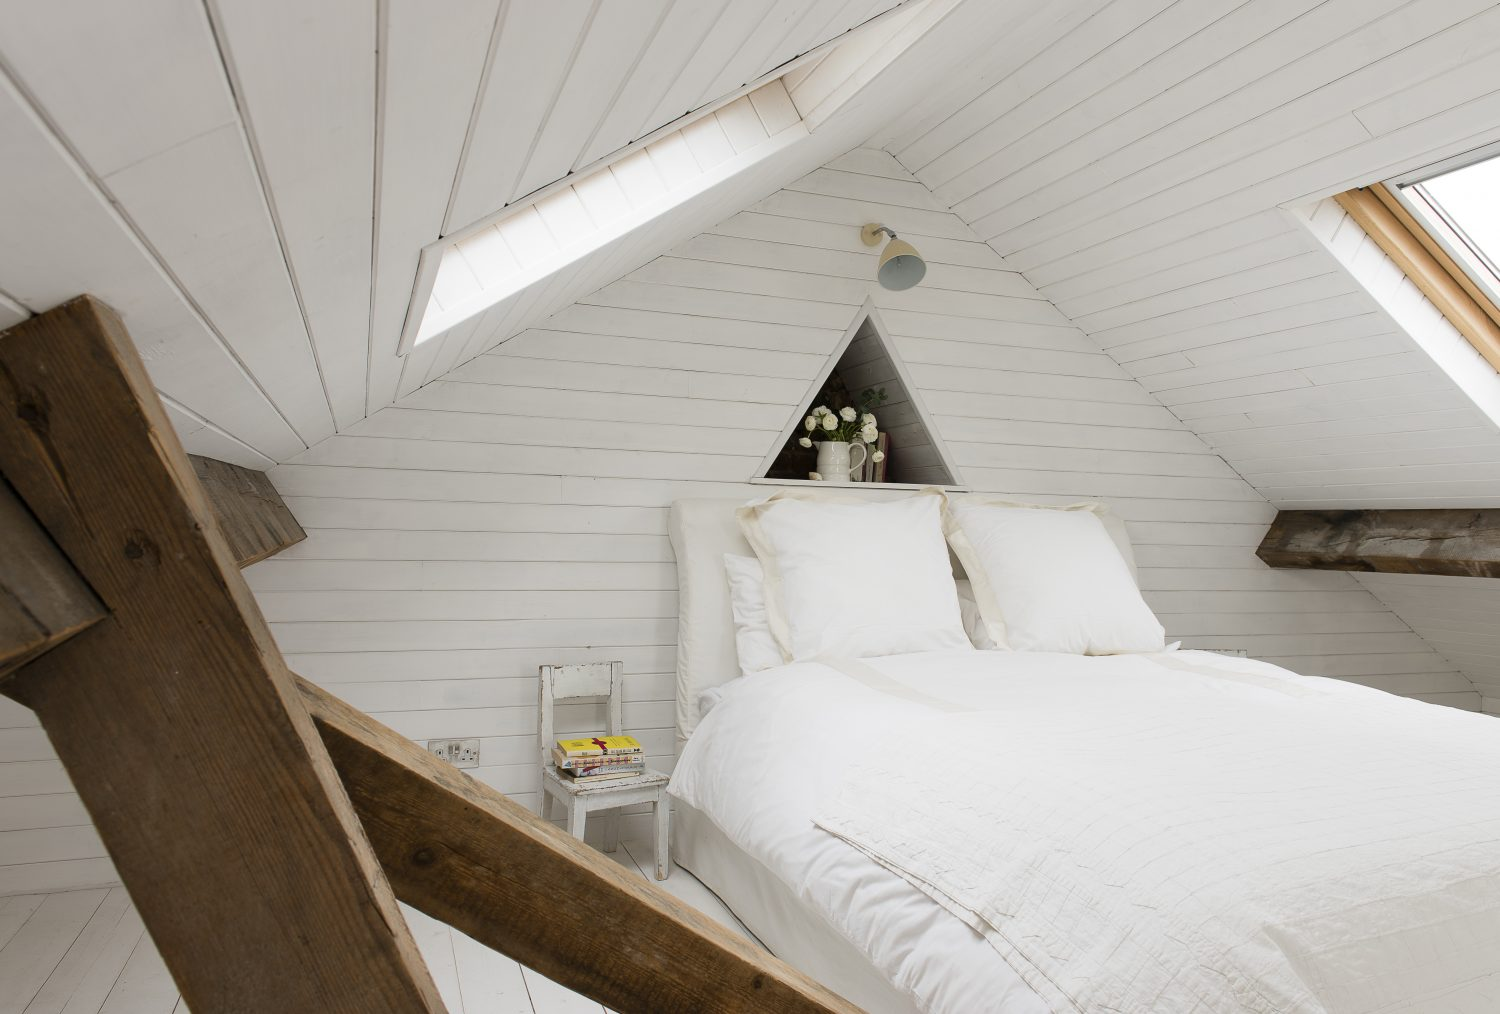 Marta created a new double bedroom in the eaves of the house, large and airy with light pouring through Velux windows, accessed by this ship-like ladder